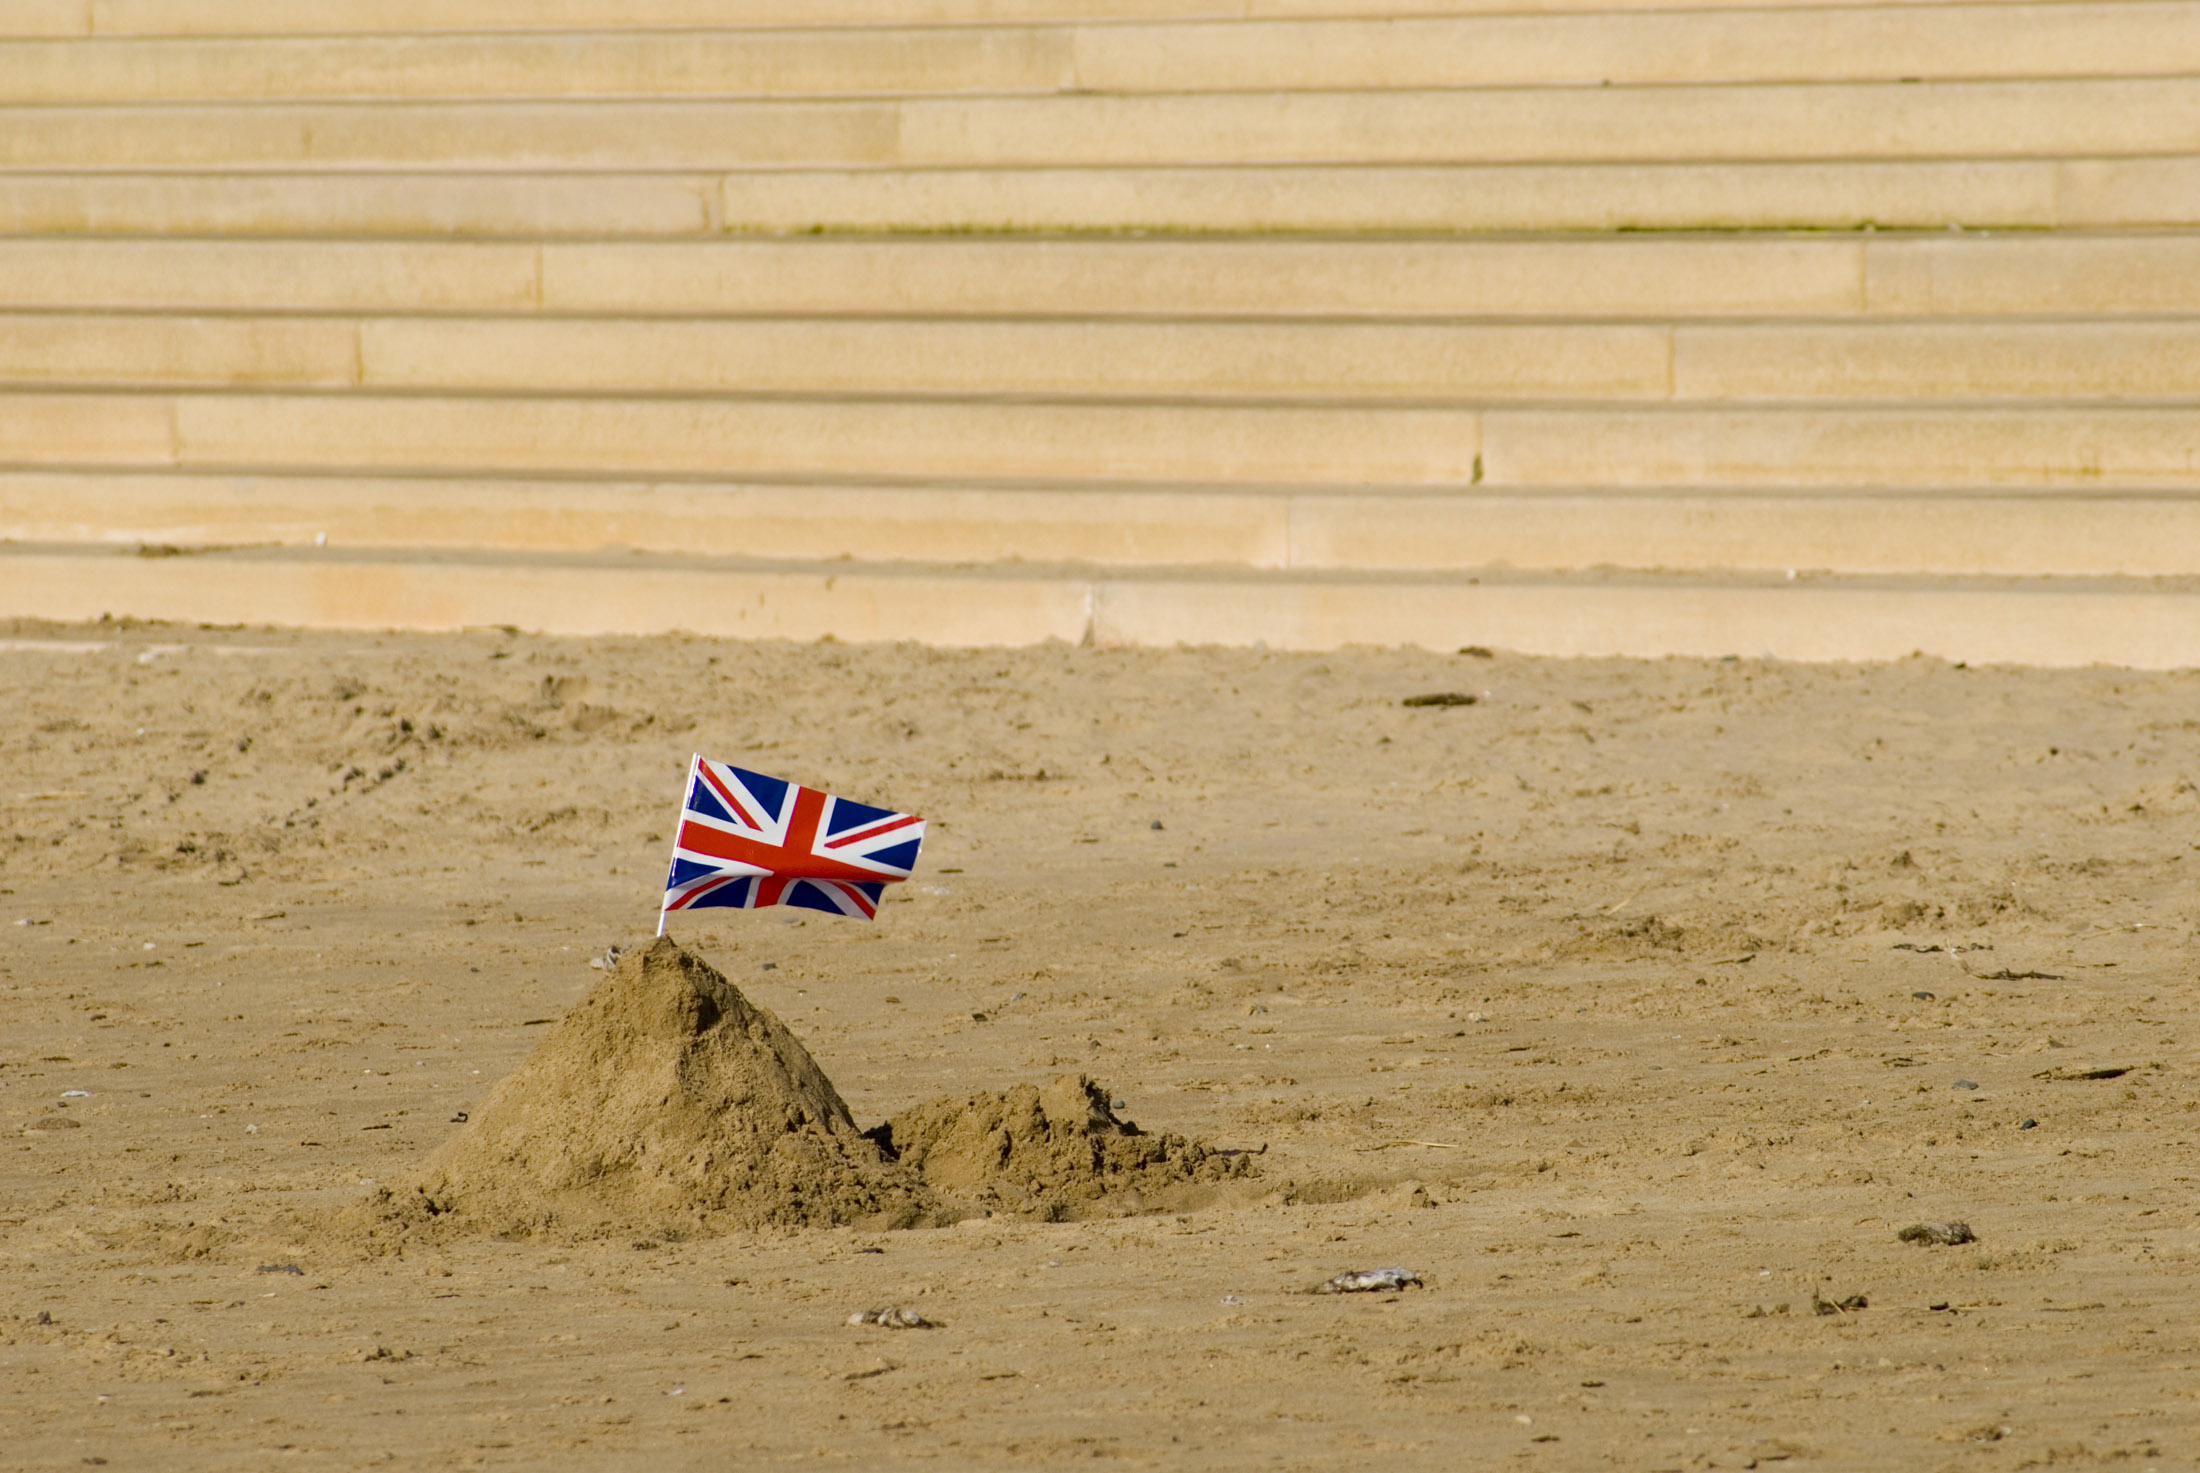 a simple sand castle with a union jack stuck in it